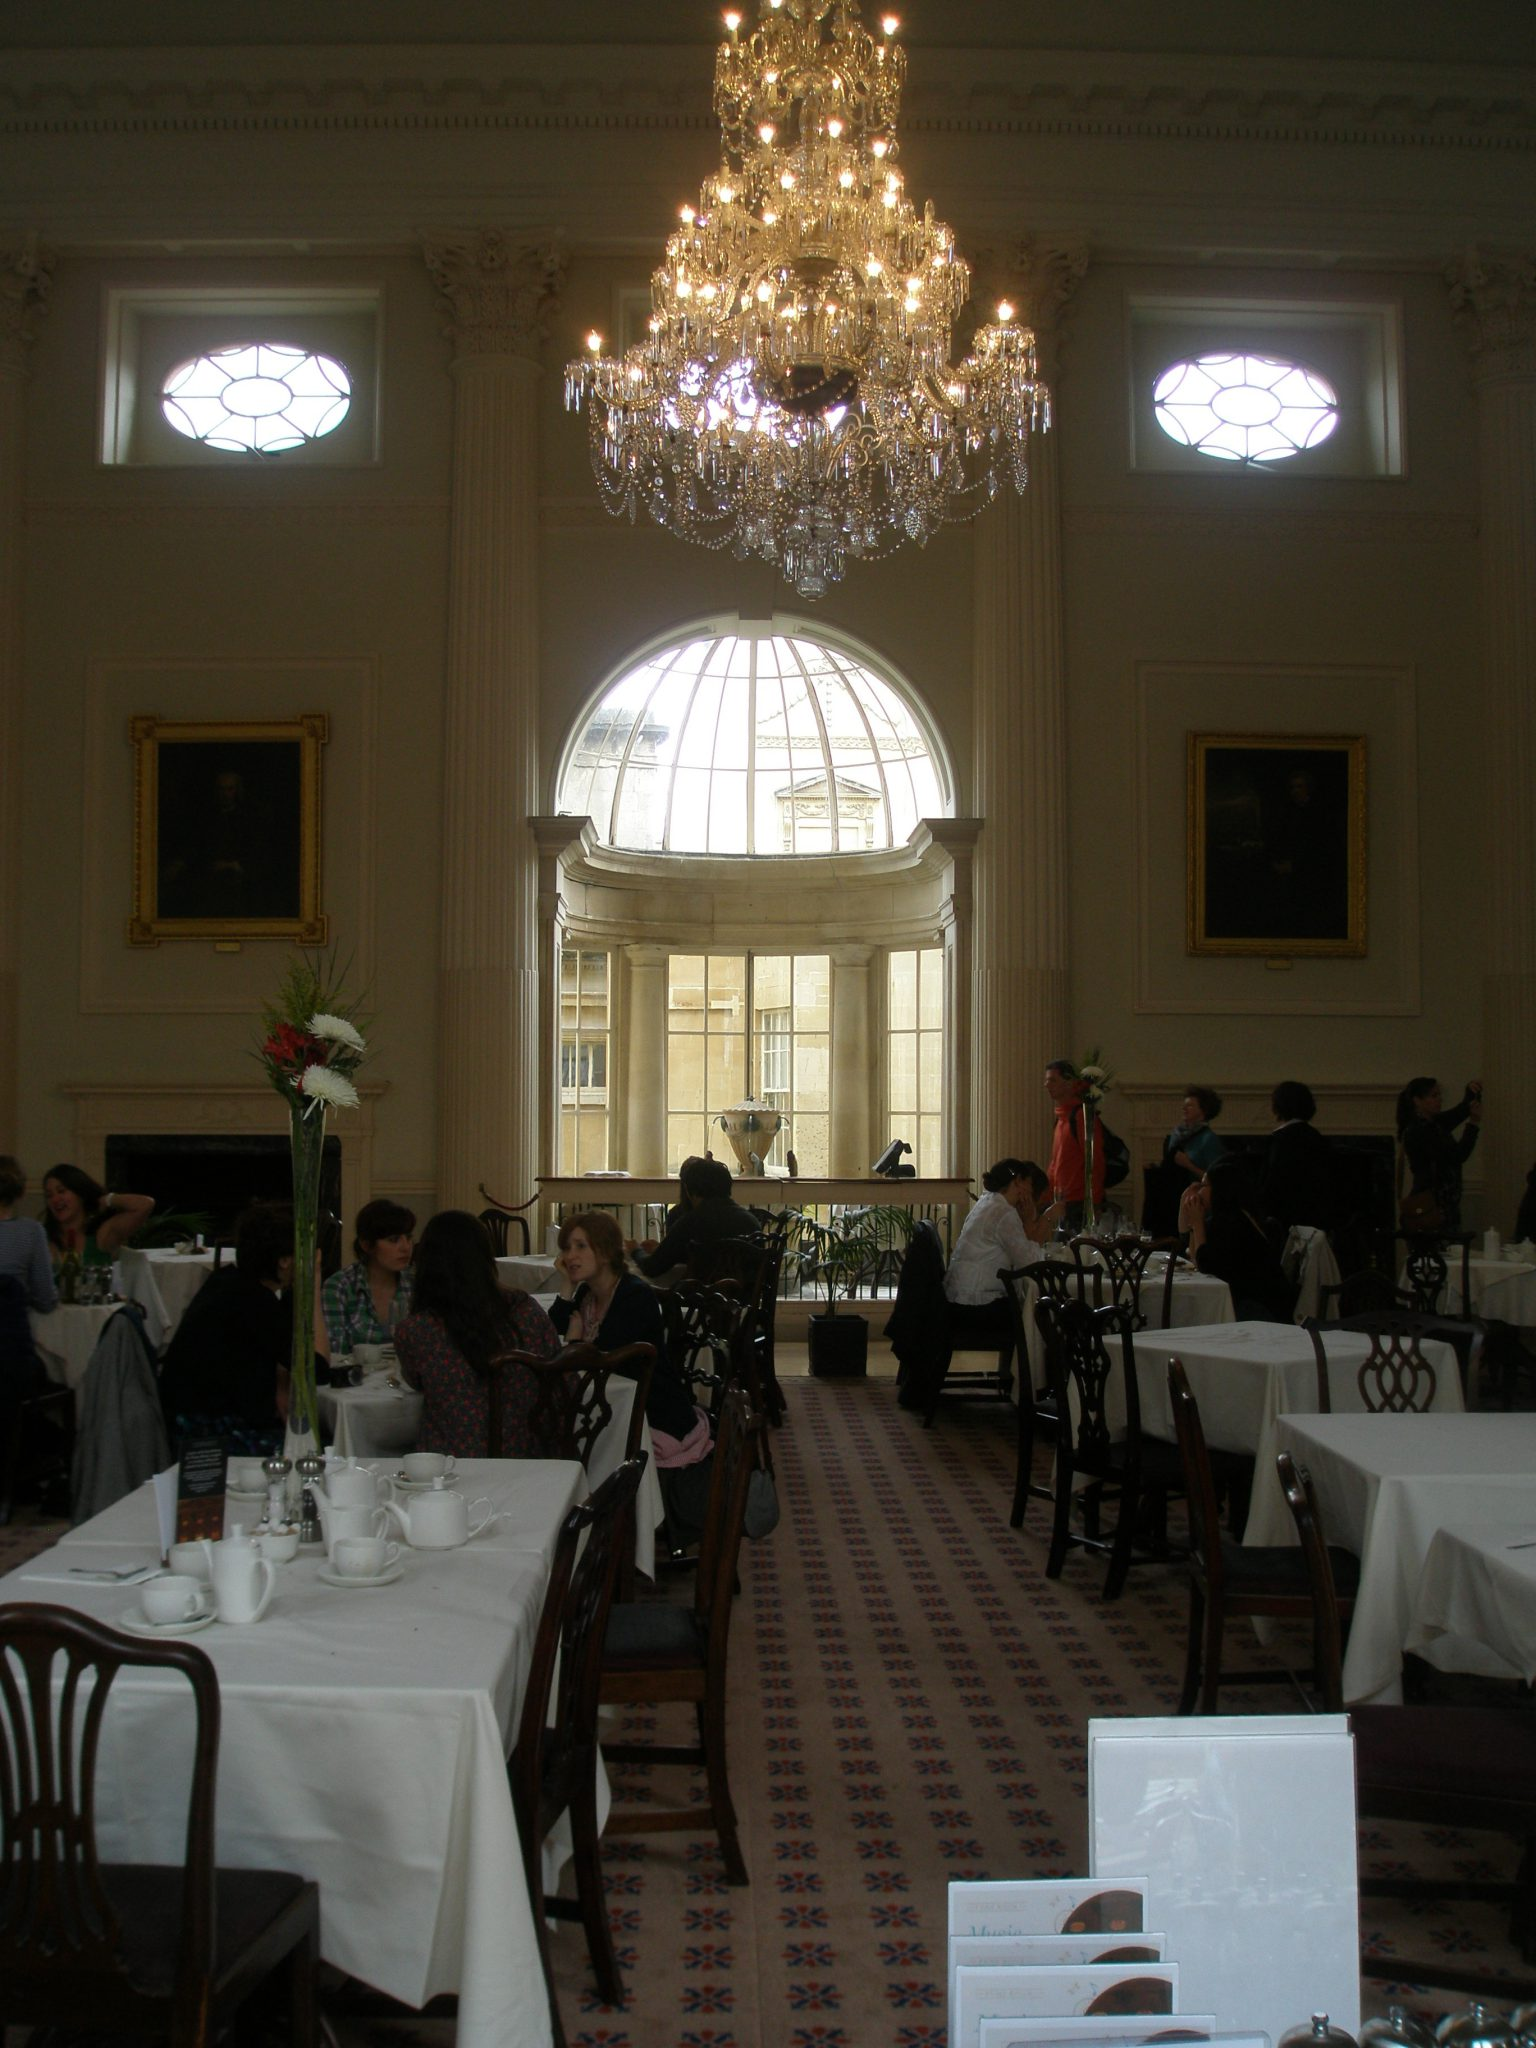 Another view of the Pump Room, just before closing time